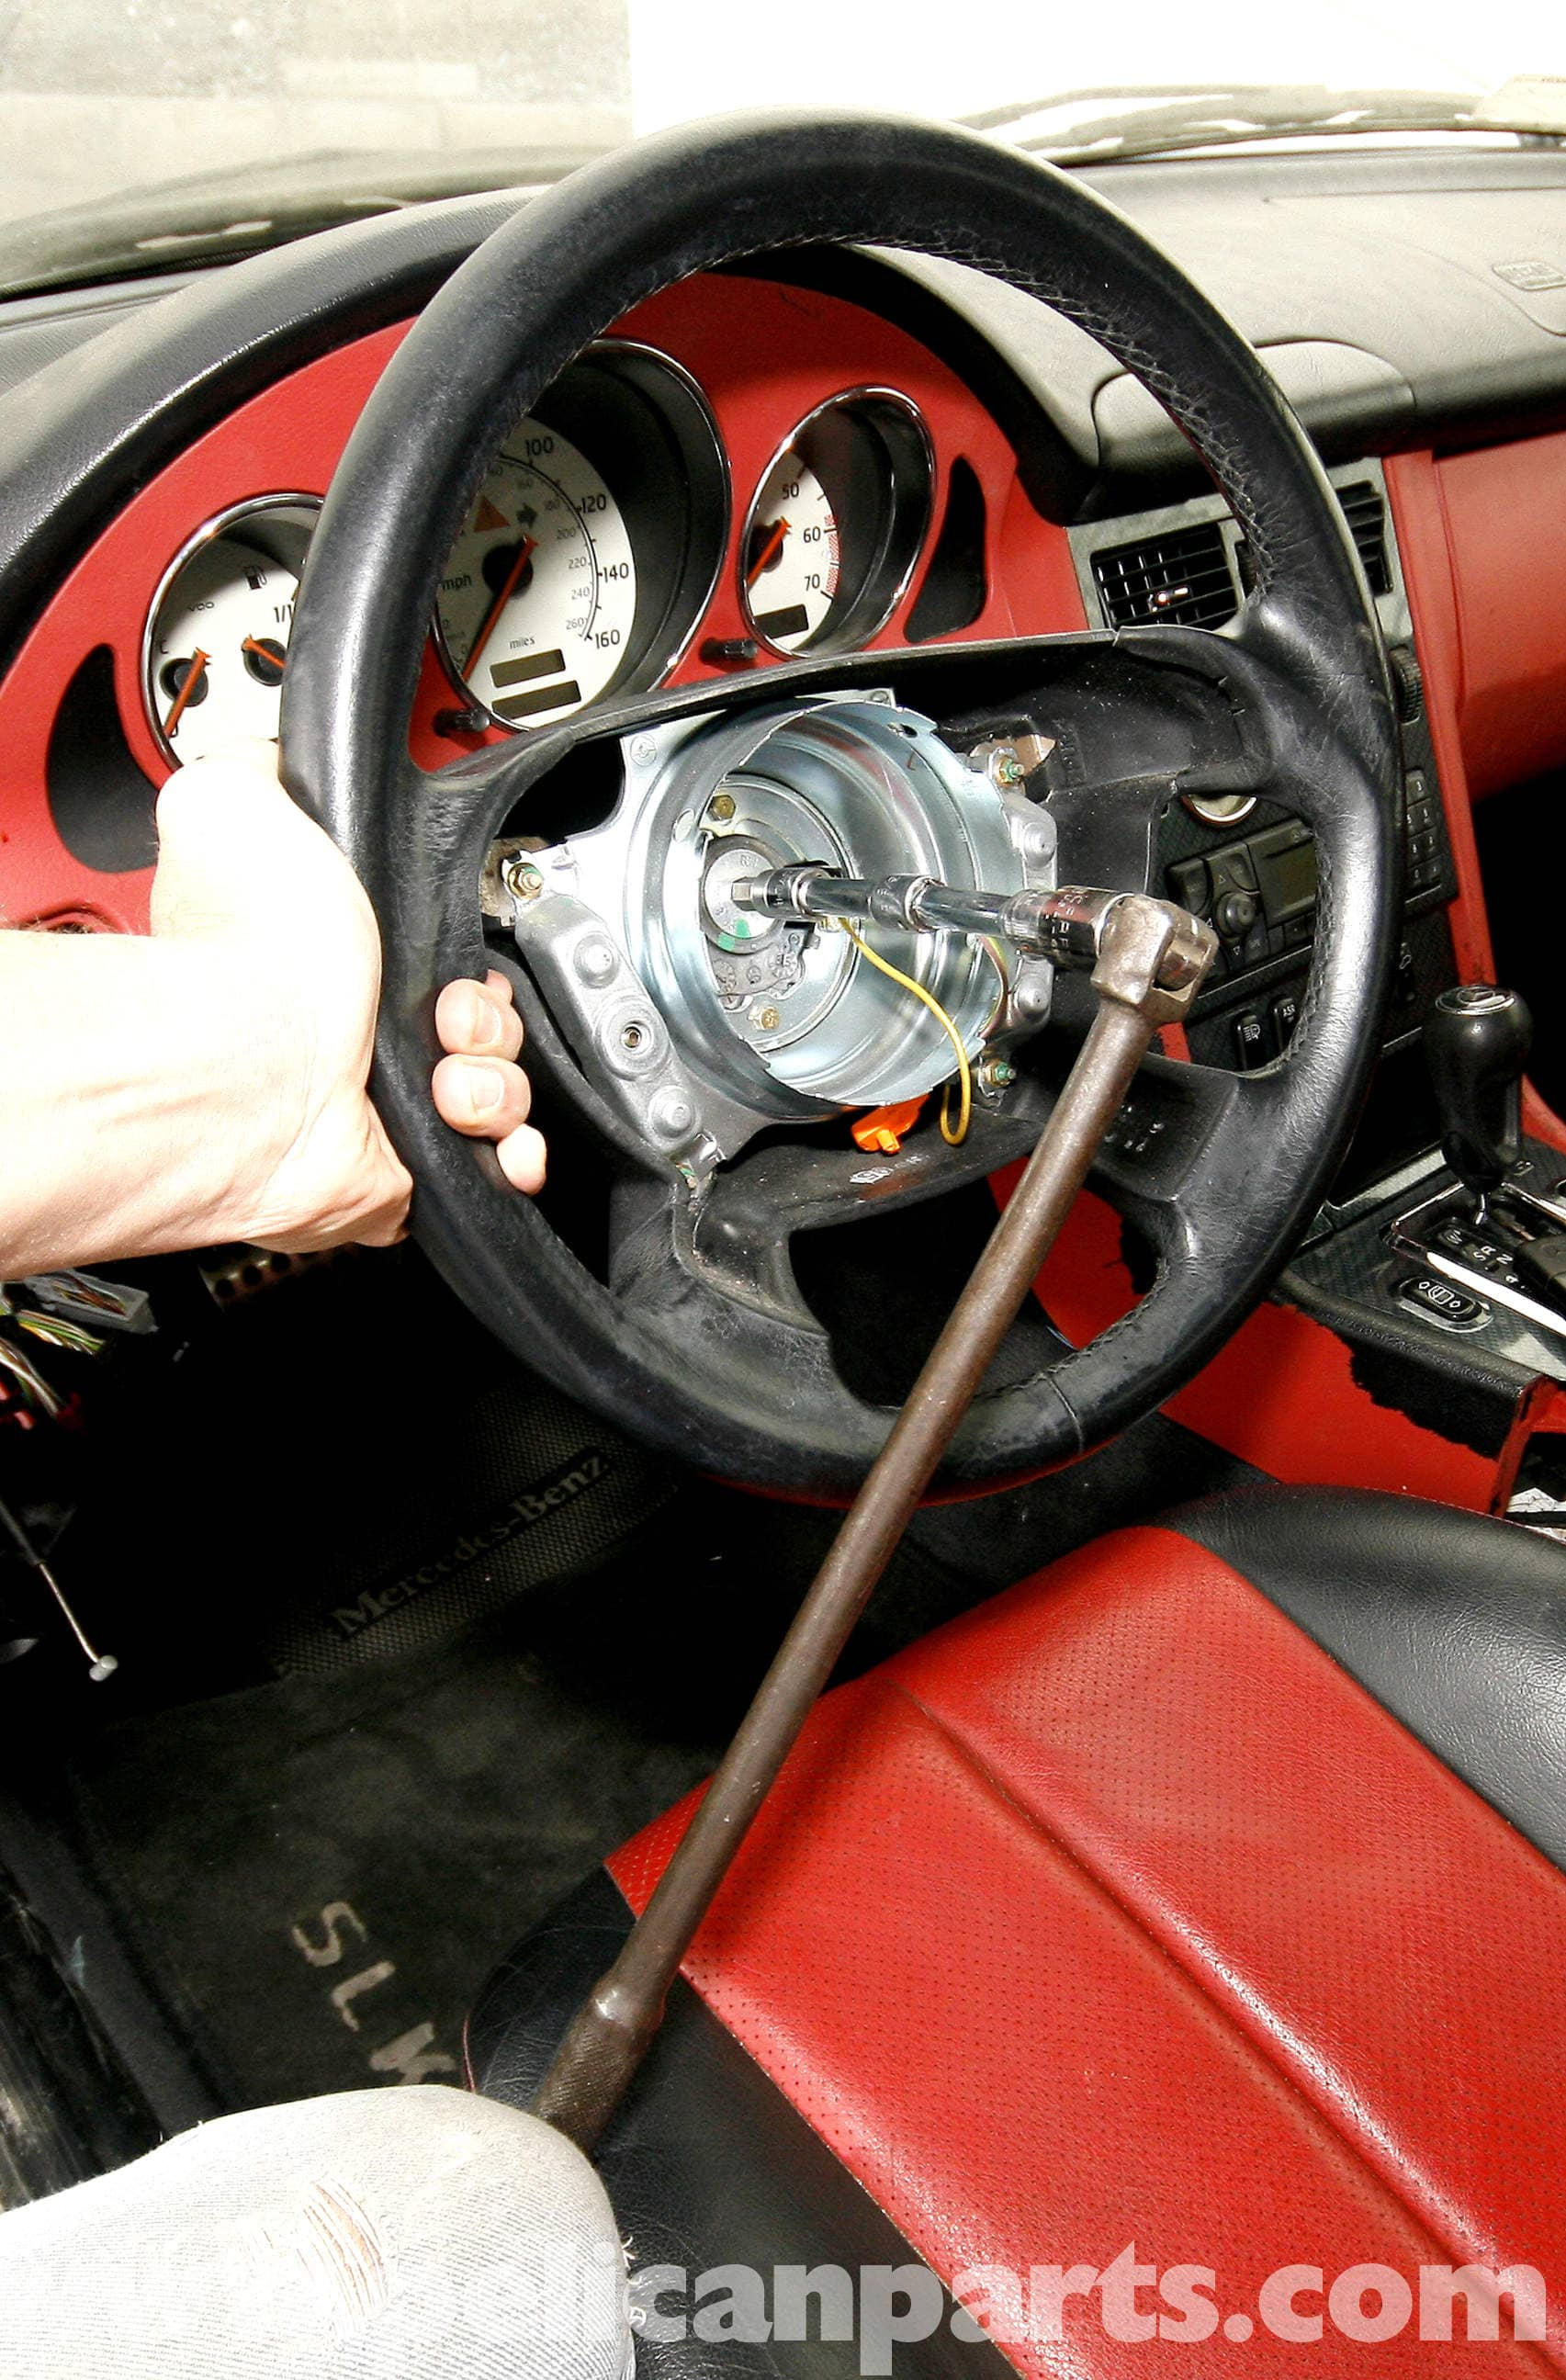 D How To Remove Steering Angle Sensor March further Rotate moreover Hqdefault in addition Peugeot Cc Fuse Box Fascia Box moreover D Simple Fix Steering Angle Sensor Sas. on steering angle sensor